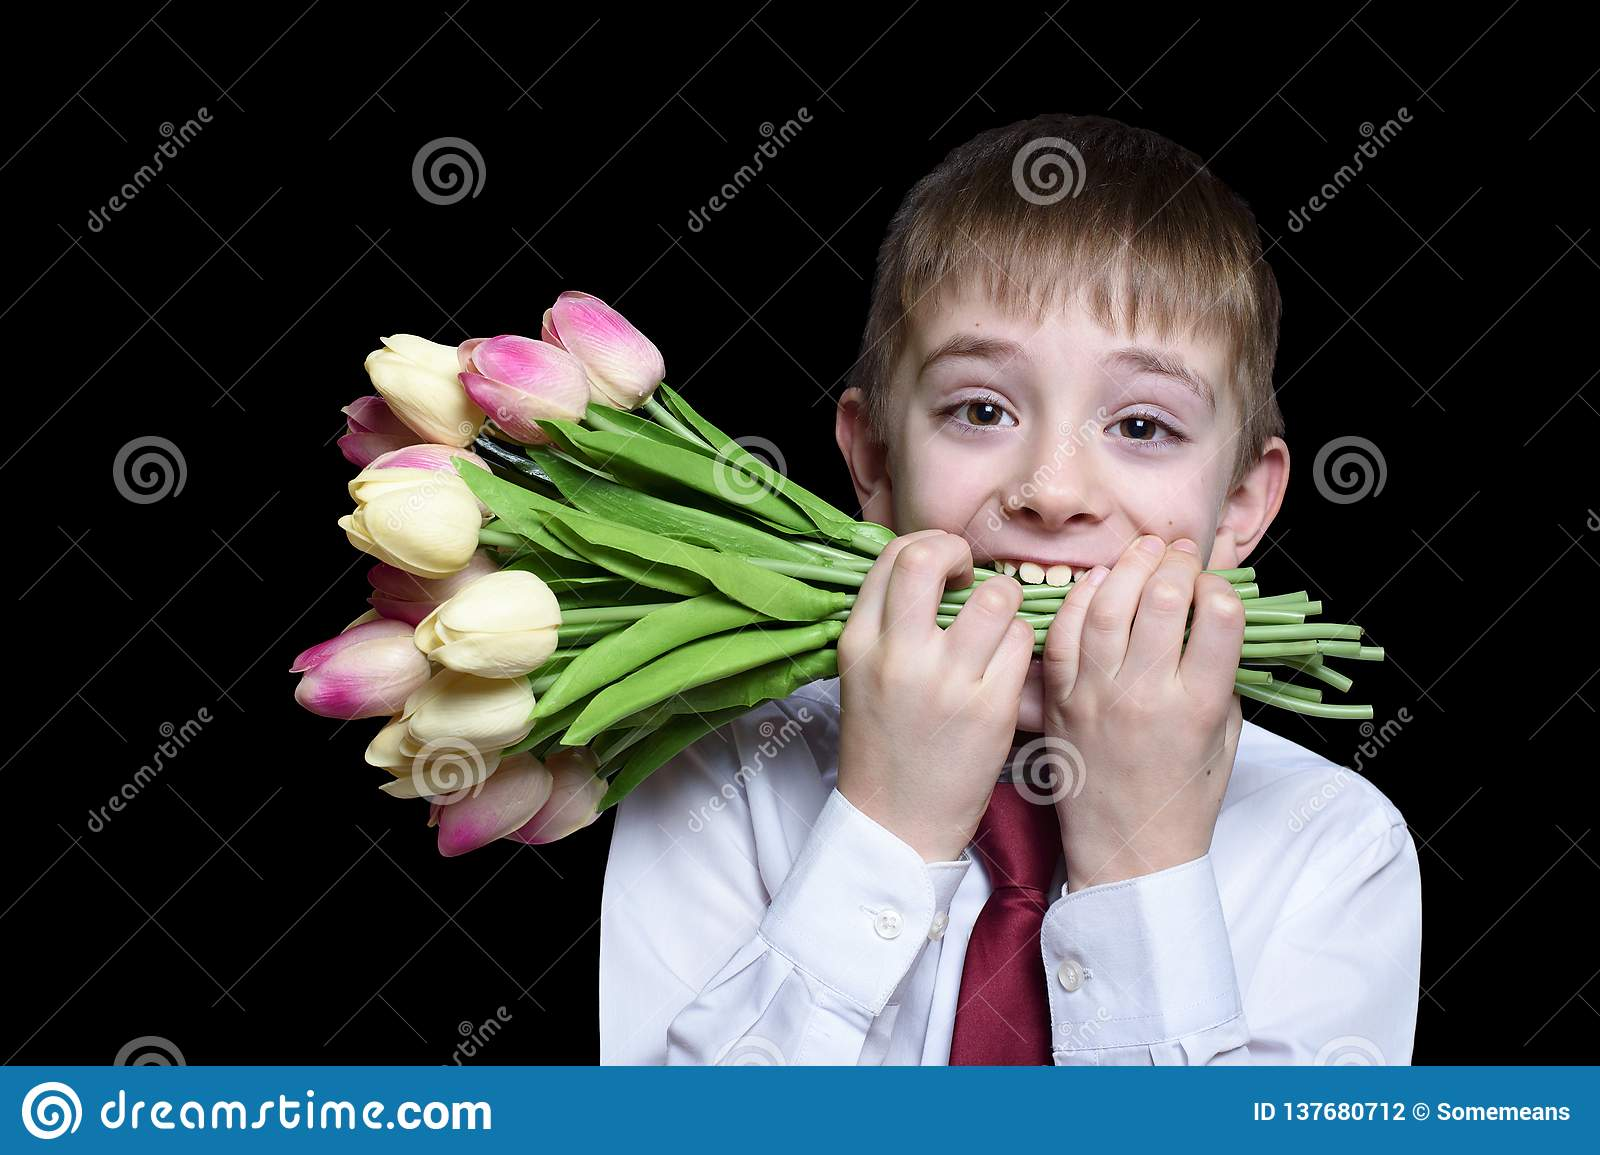 Boy in shirt and tie holding a bouquet of tulips in the teeth. Isolate on black background